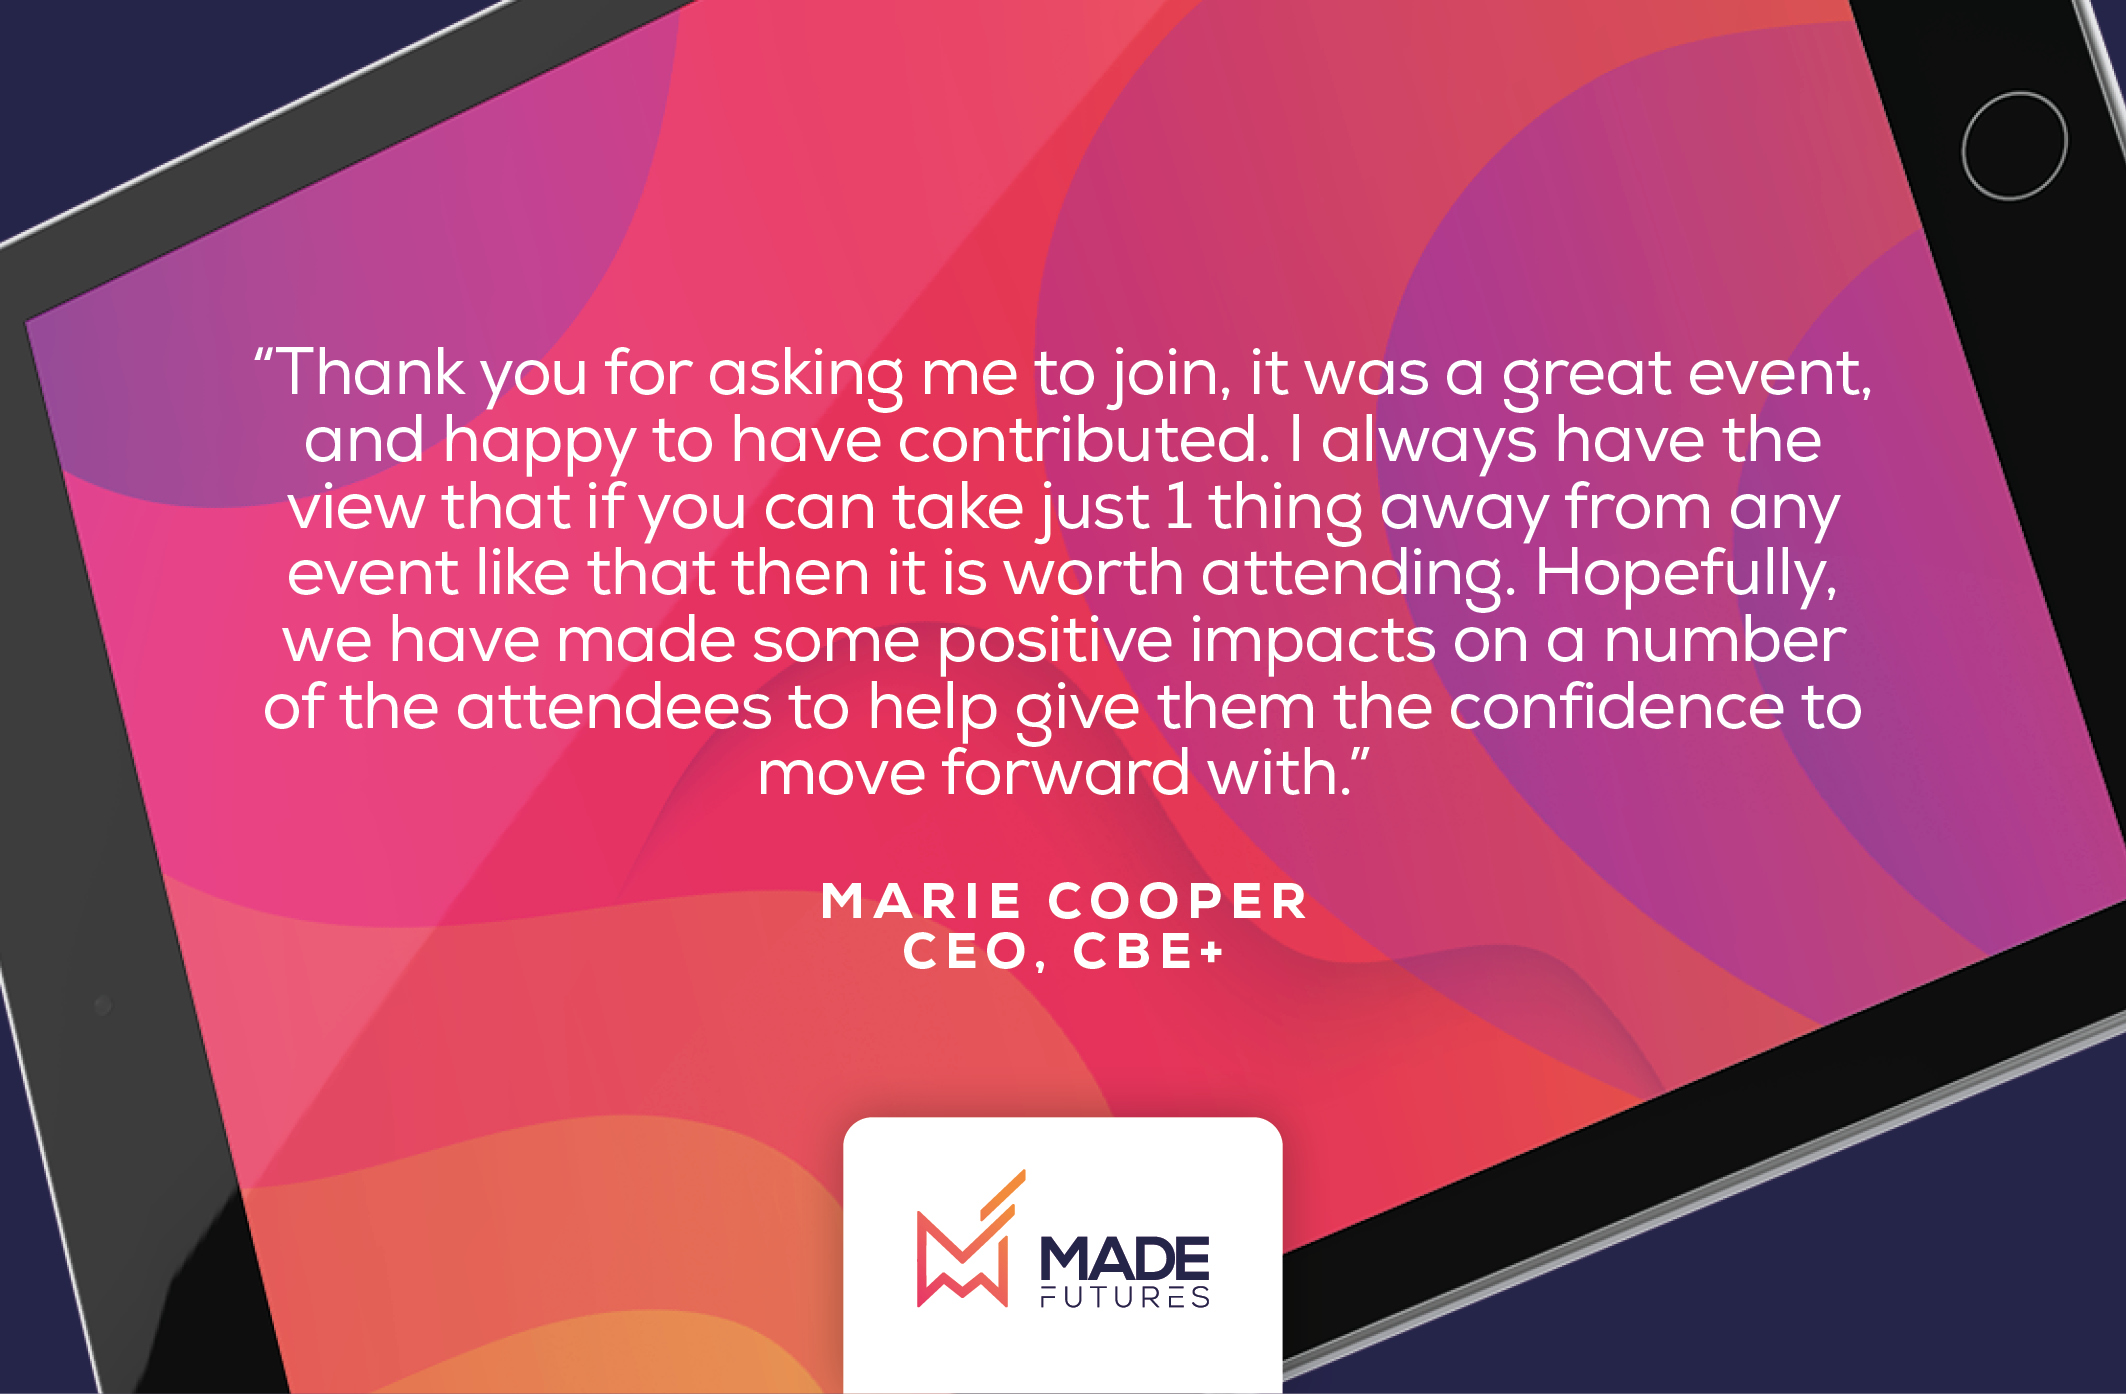 Testimonial by Marie Cooper, CEO at CBE+